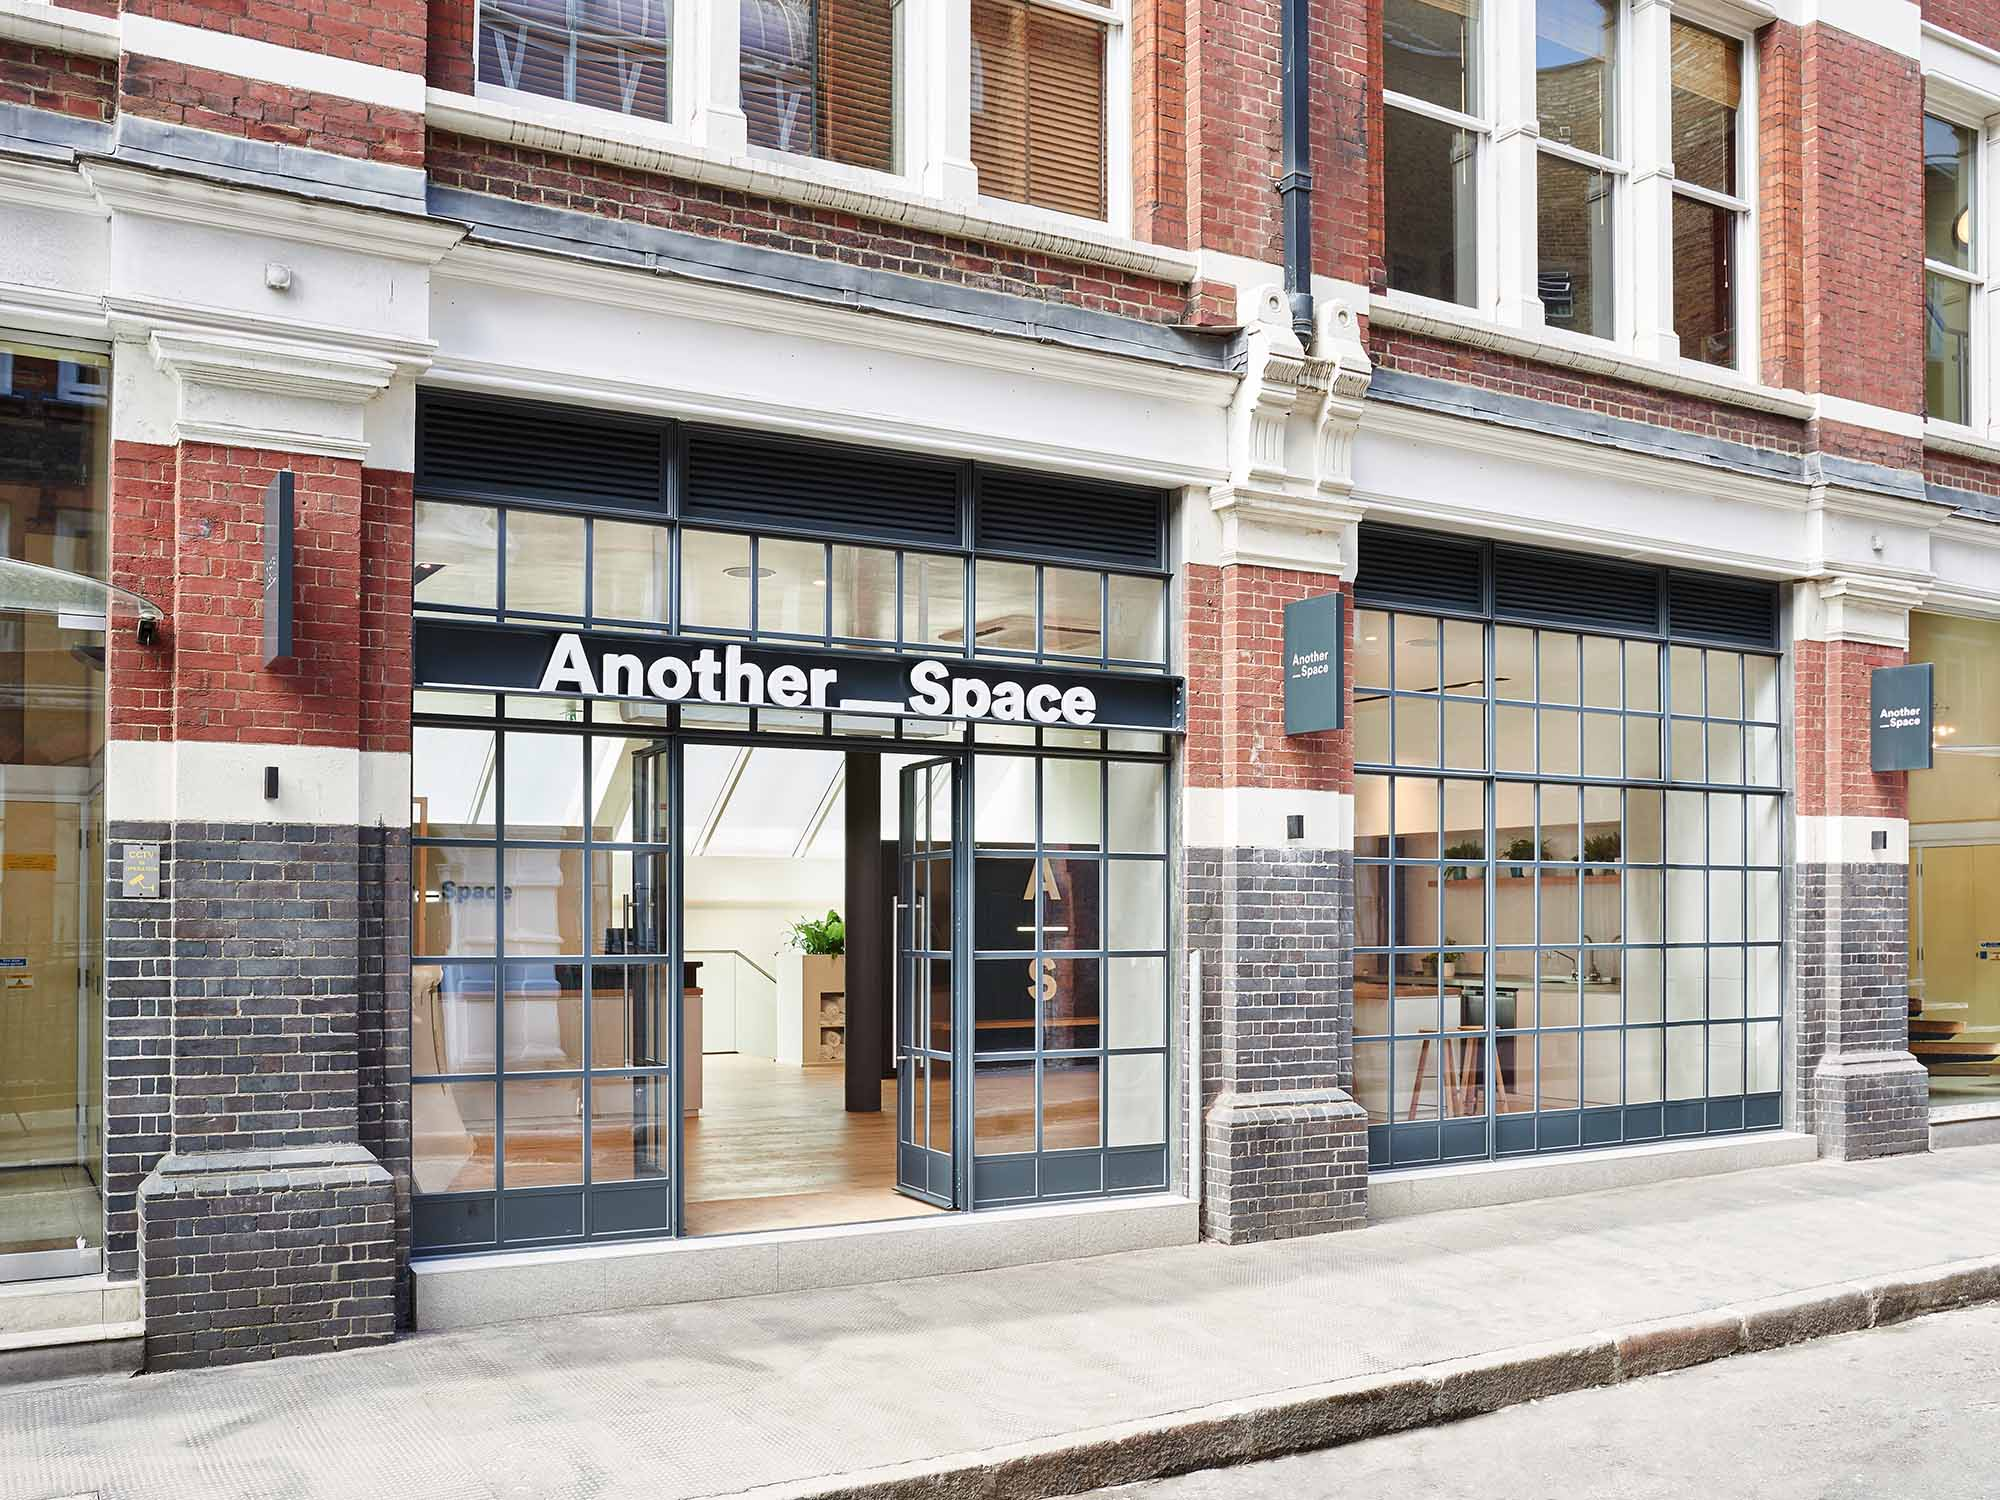 H-House-Another-Space-London-Another_Space_JMS-013.JPG